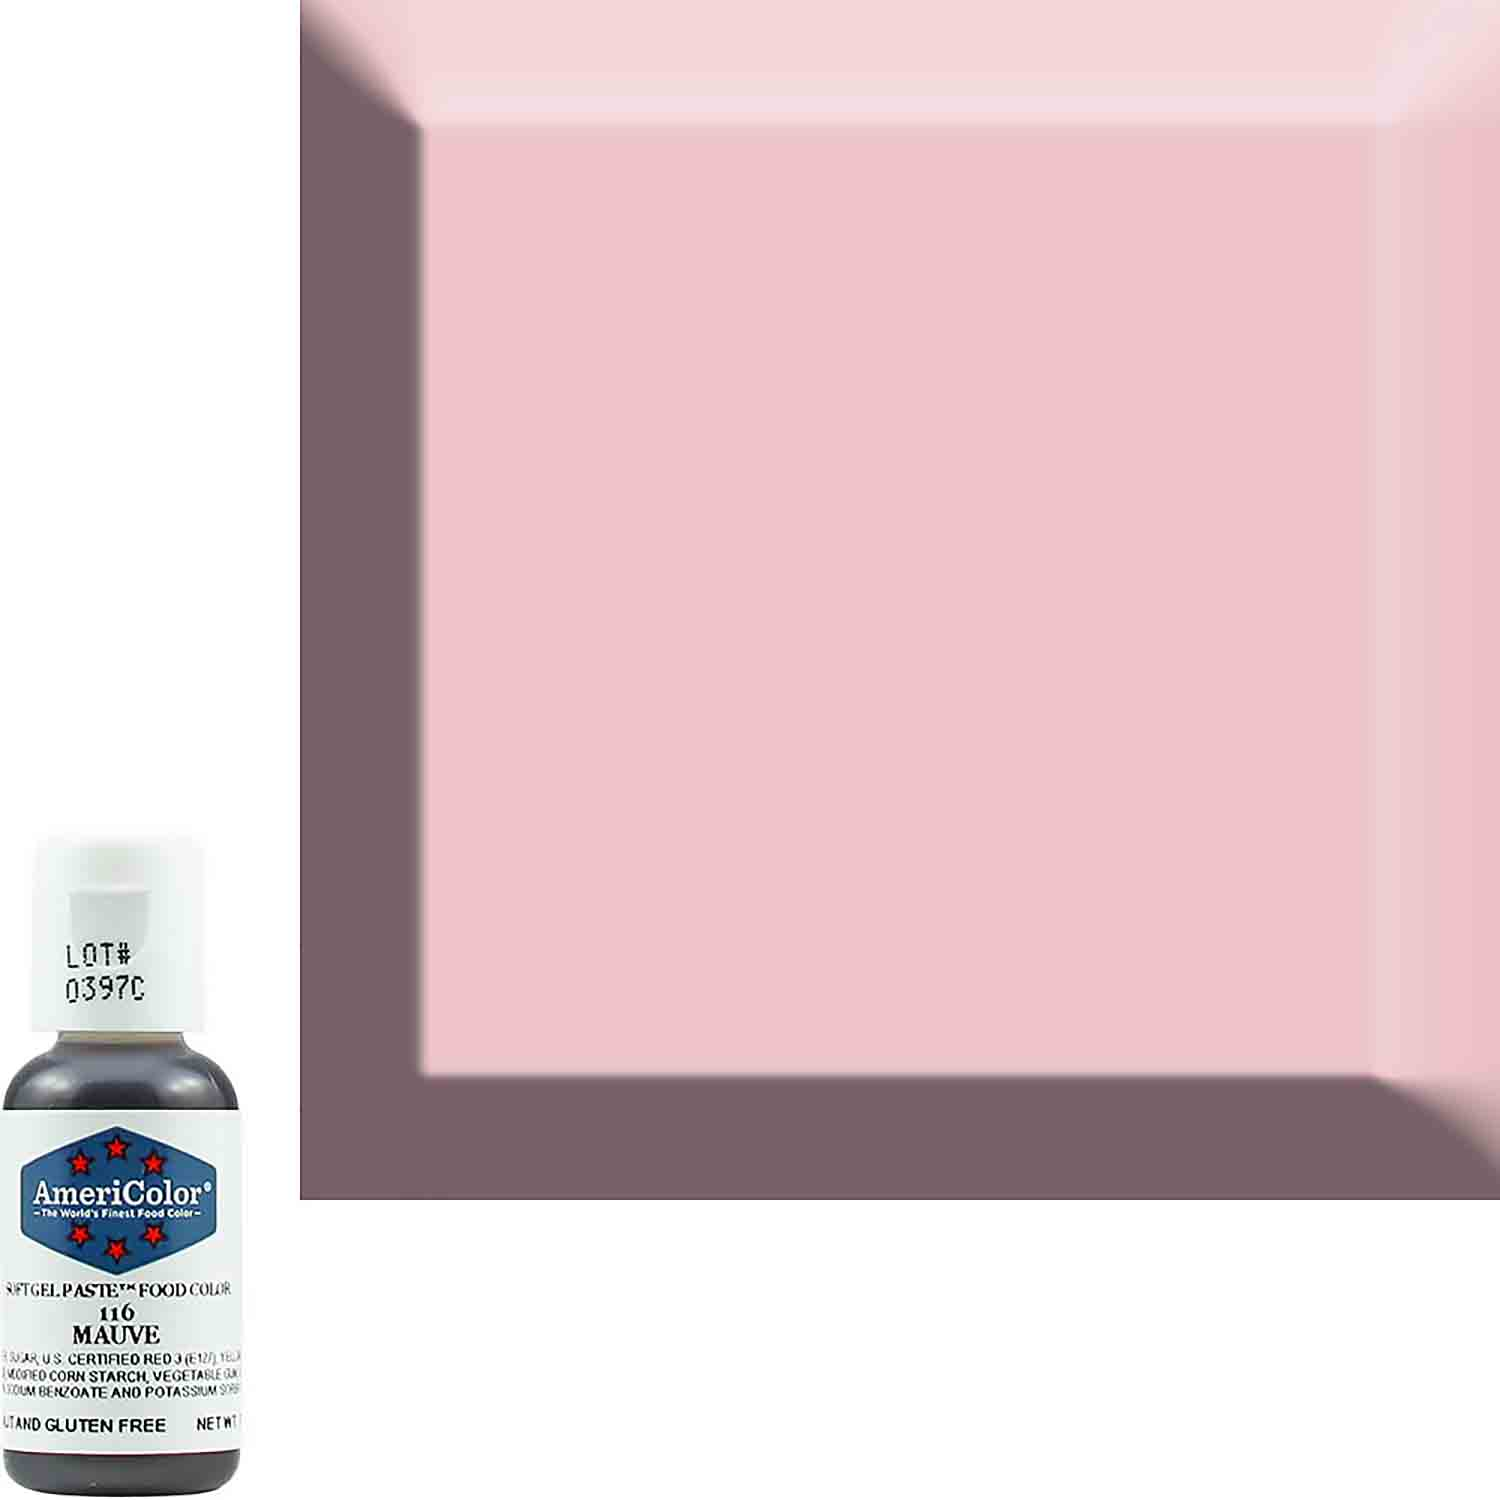 Mauve AmeriColor® Soft Gel Paste™ Food Color